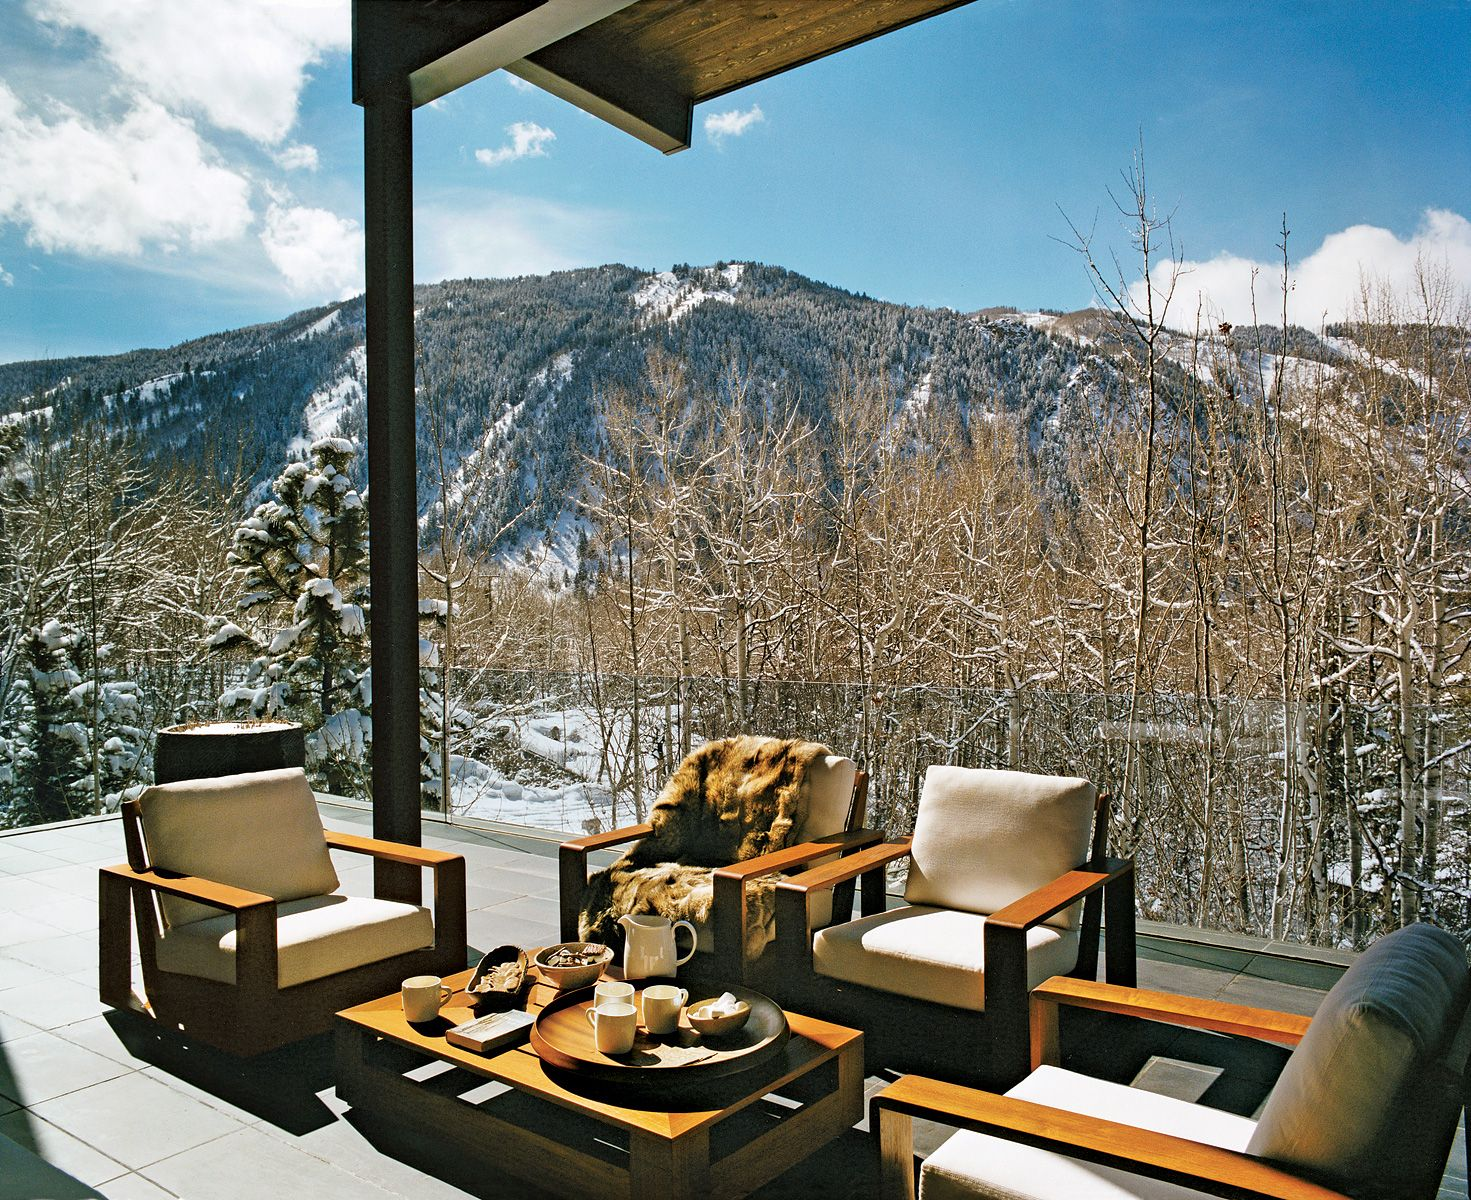 Aerin Lauderu0027s Aspen Home ~ The Semi Covered Deck, Furnished With David  Sutherland Teak Lounge Chairs And Coffee Table With Provisions For Hot  Chocolate, ...